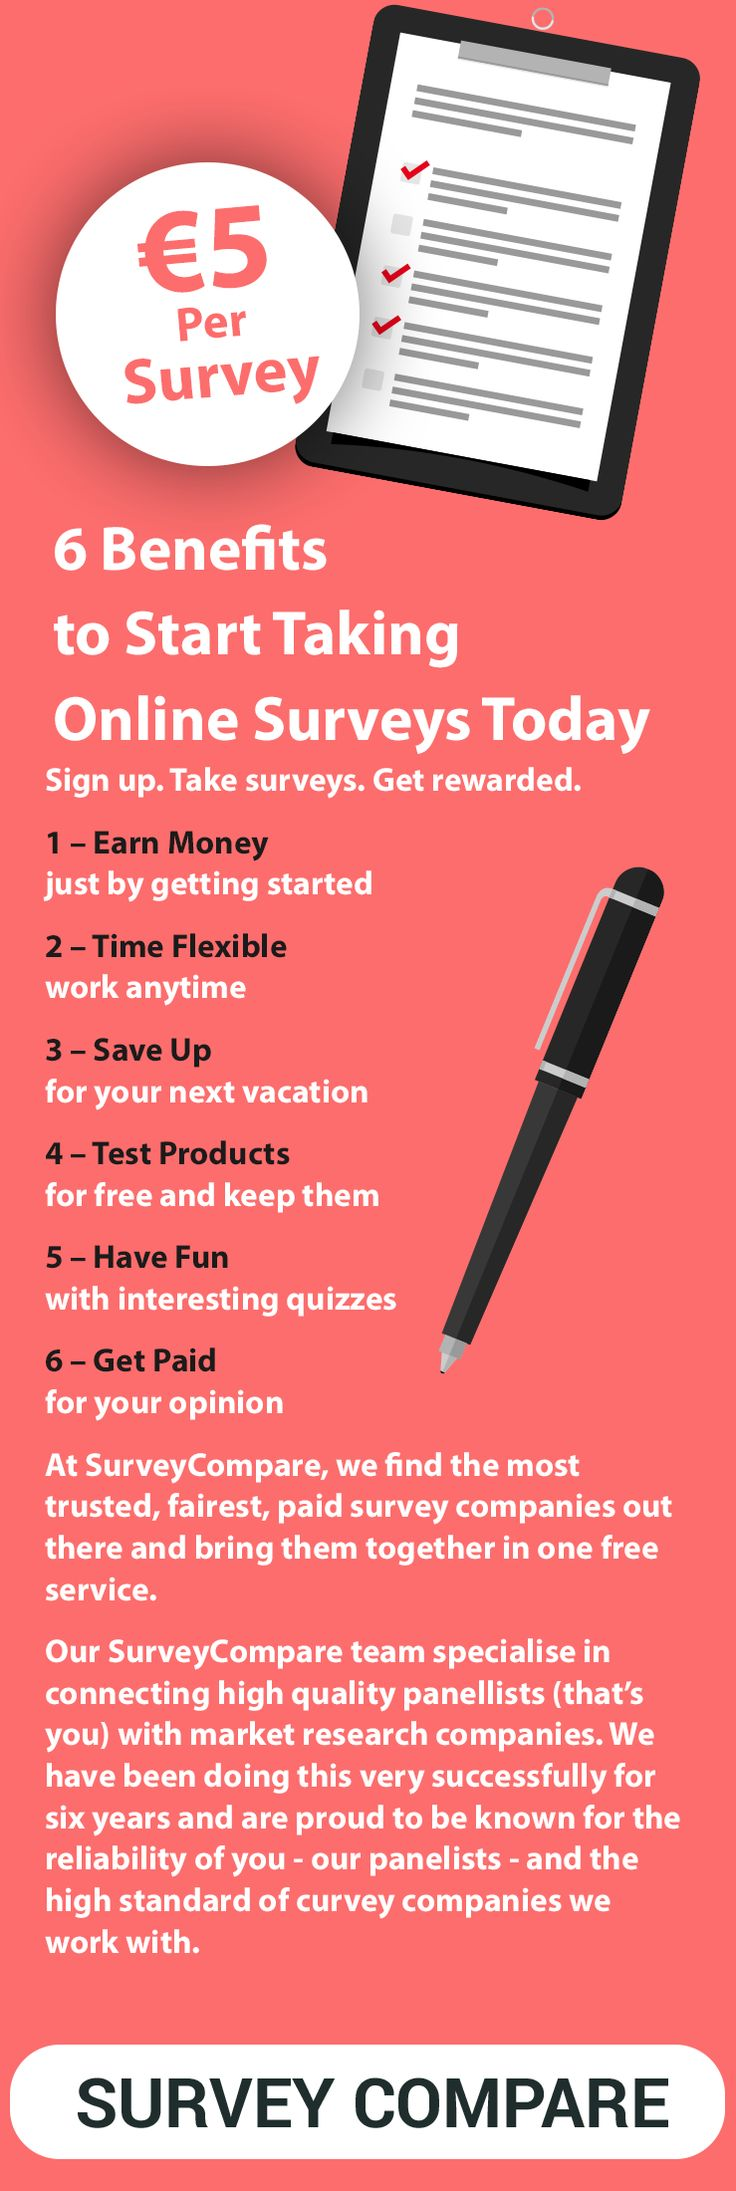 The amount of money you can earn depends on how many companies you choose to sign up for and how long you want to spend completing surveys. For instance, the average survey pays €5; taking 5 surveys a day, 5 days a week gives €500/month. Find out more by clicking on the image.